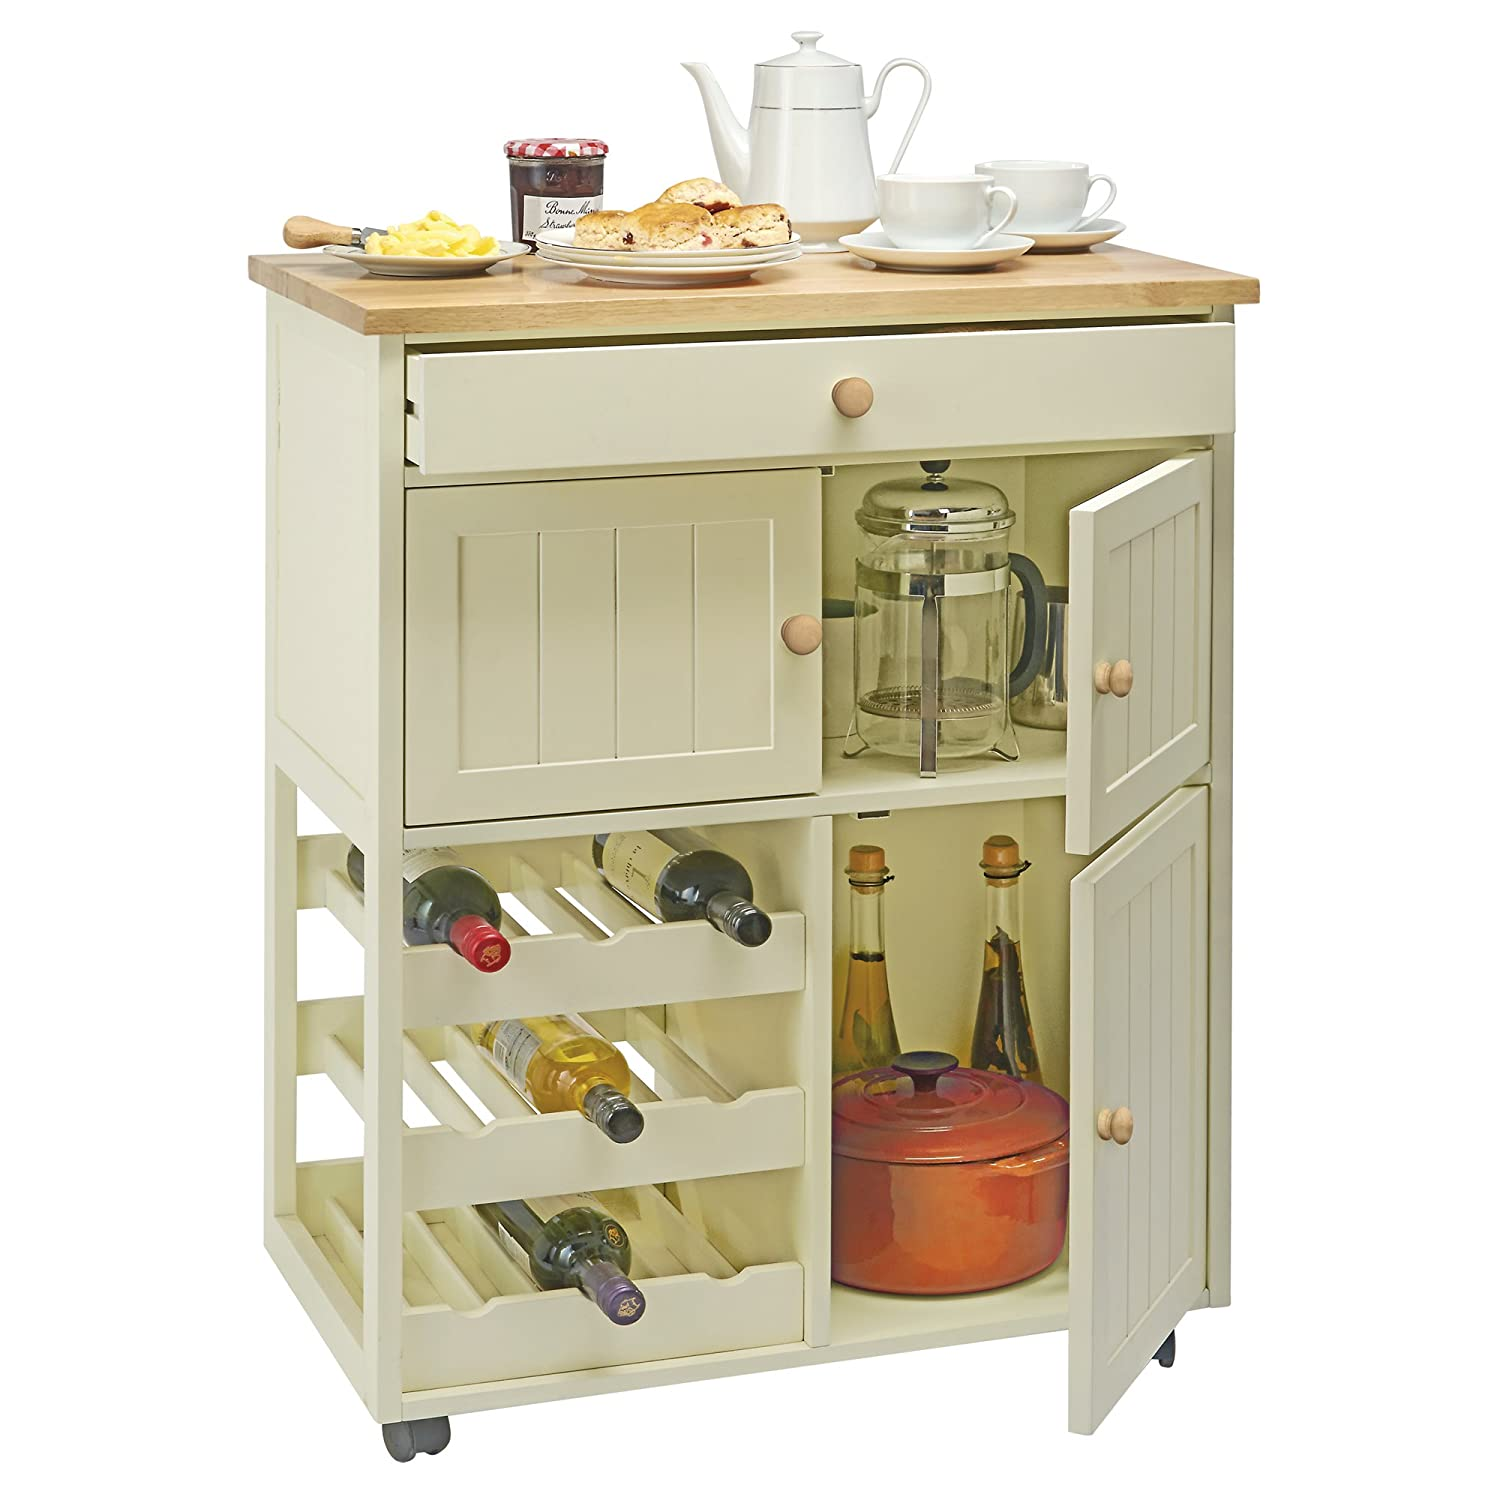 Traditional Buttermilk Multi Purpose Pantry Cabinet, Wooden Mobile Freestanding Storage Sideboard Cart with Wine Rack by Country Kitchen Clifford James